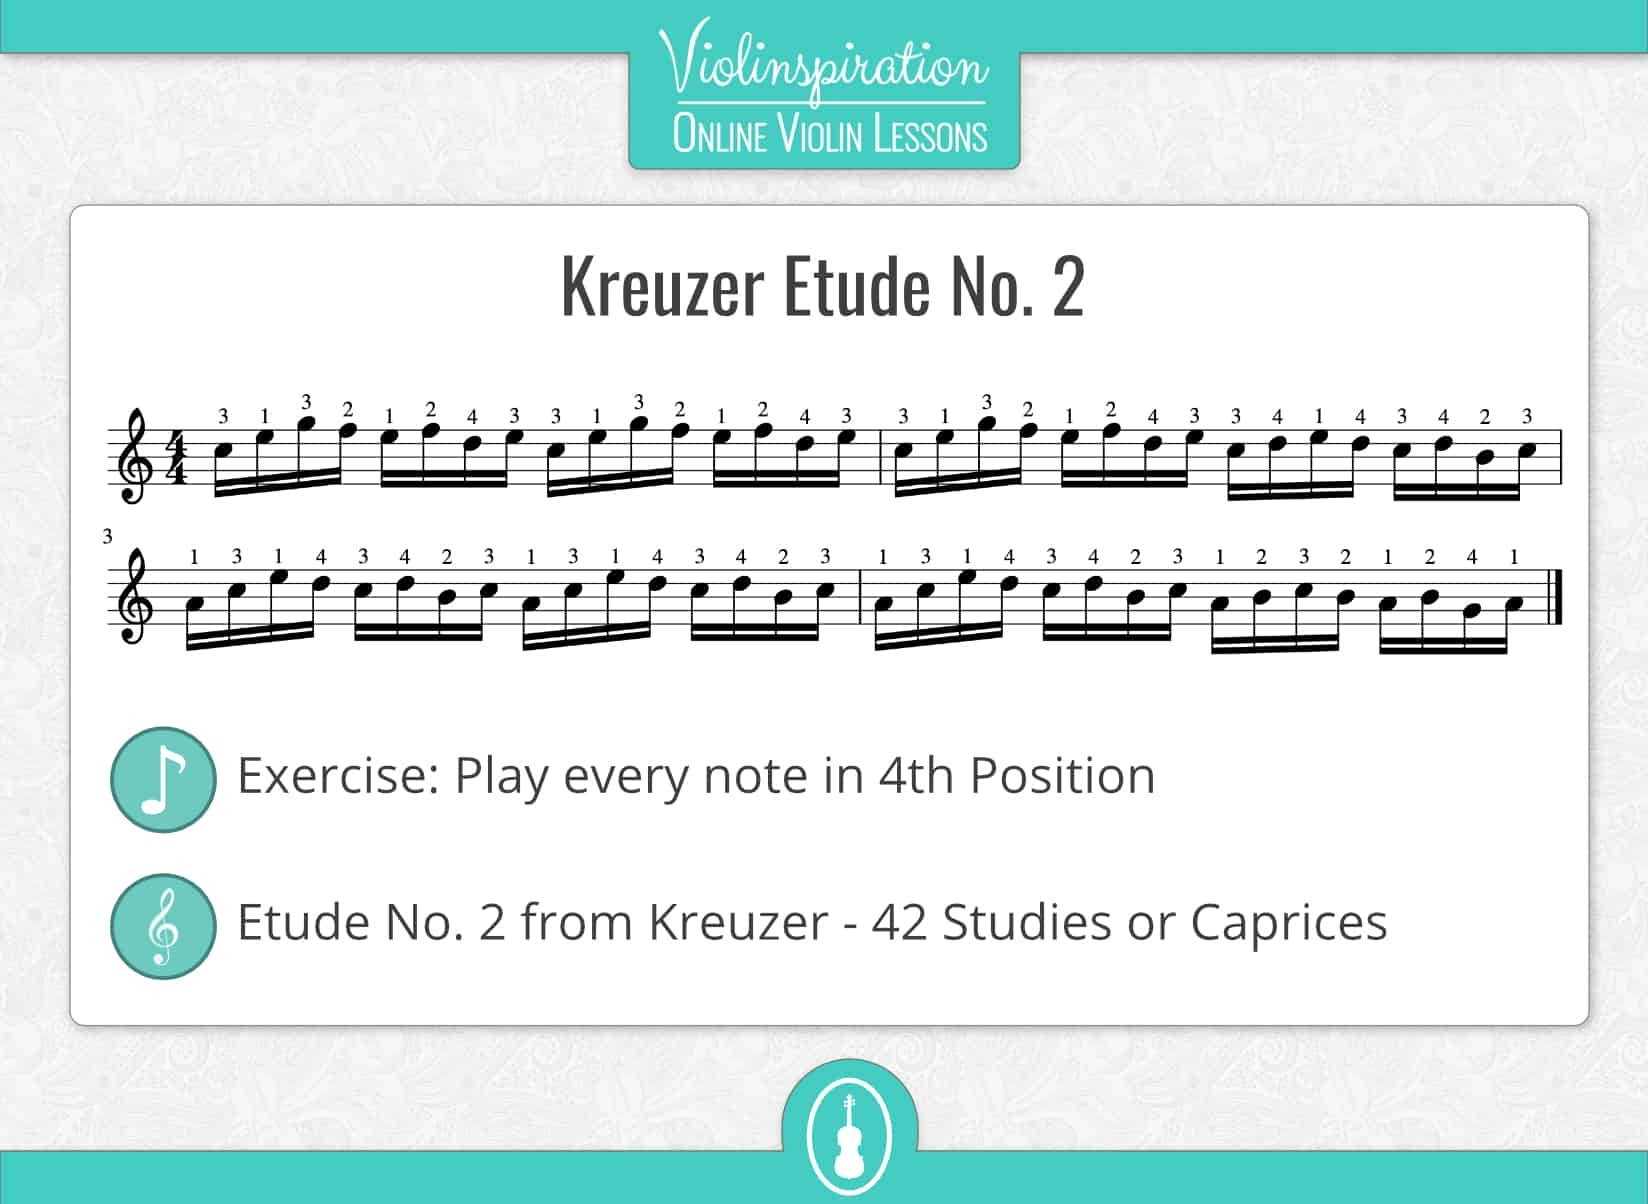 Violin Positions - Fourth Position Exercise